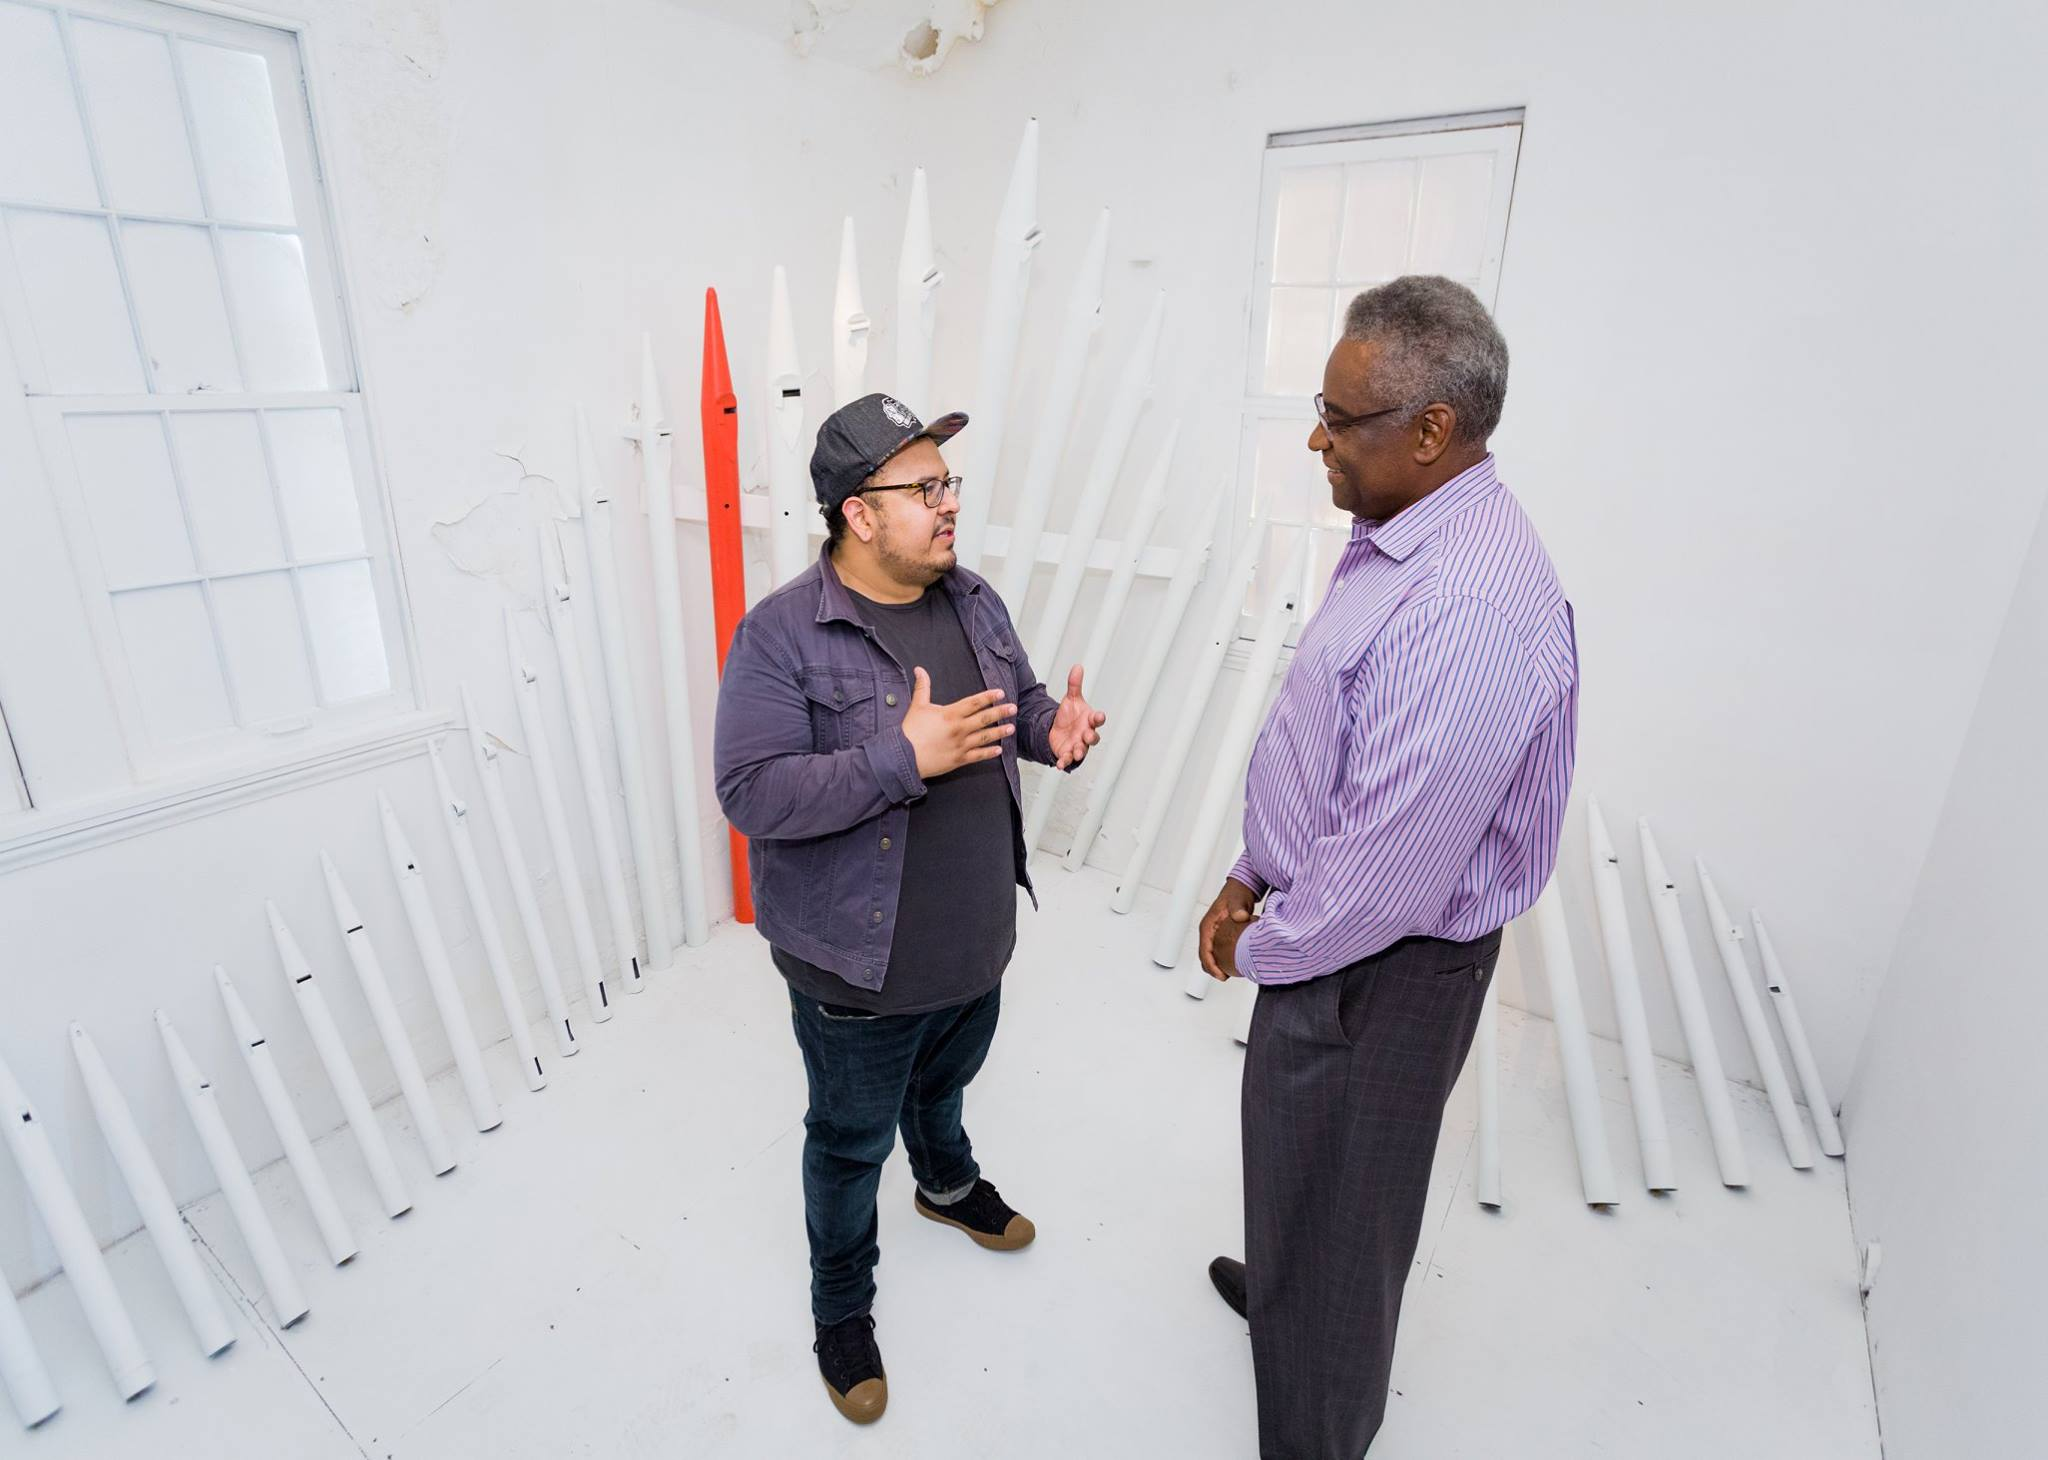 Fernando talking to a guest visiting ArtPrize Nine entry.